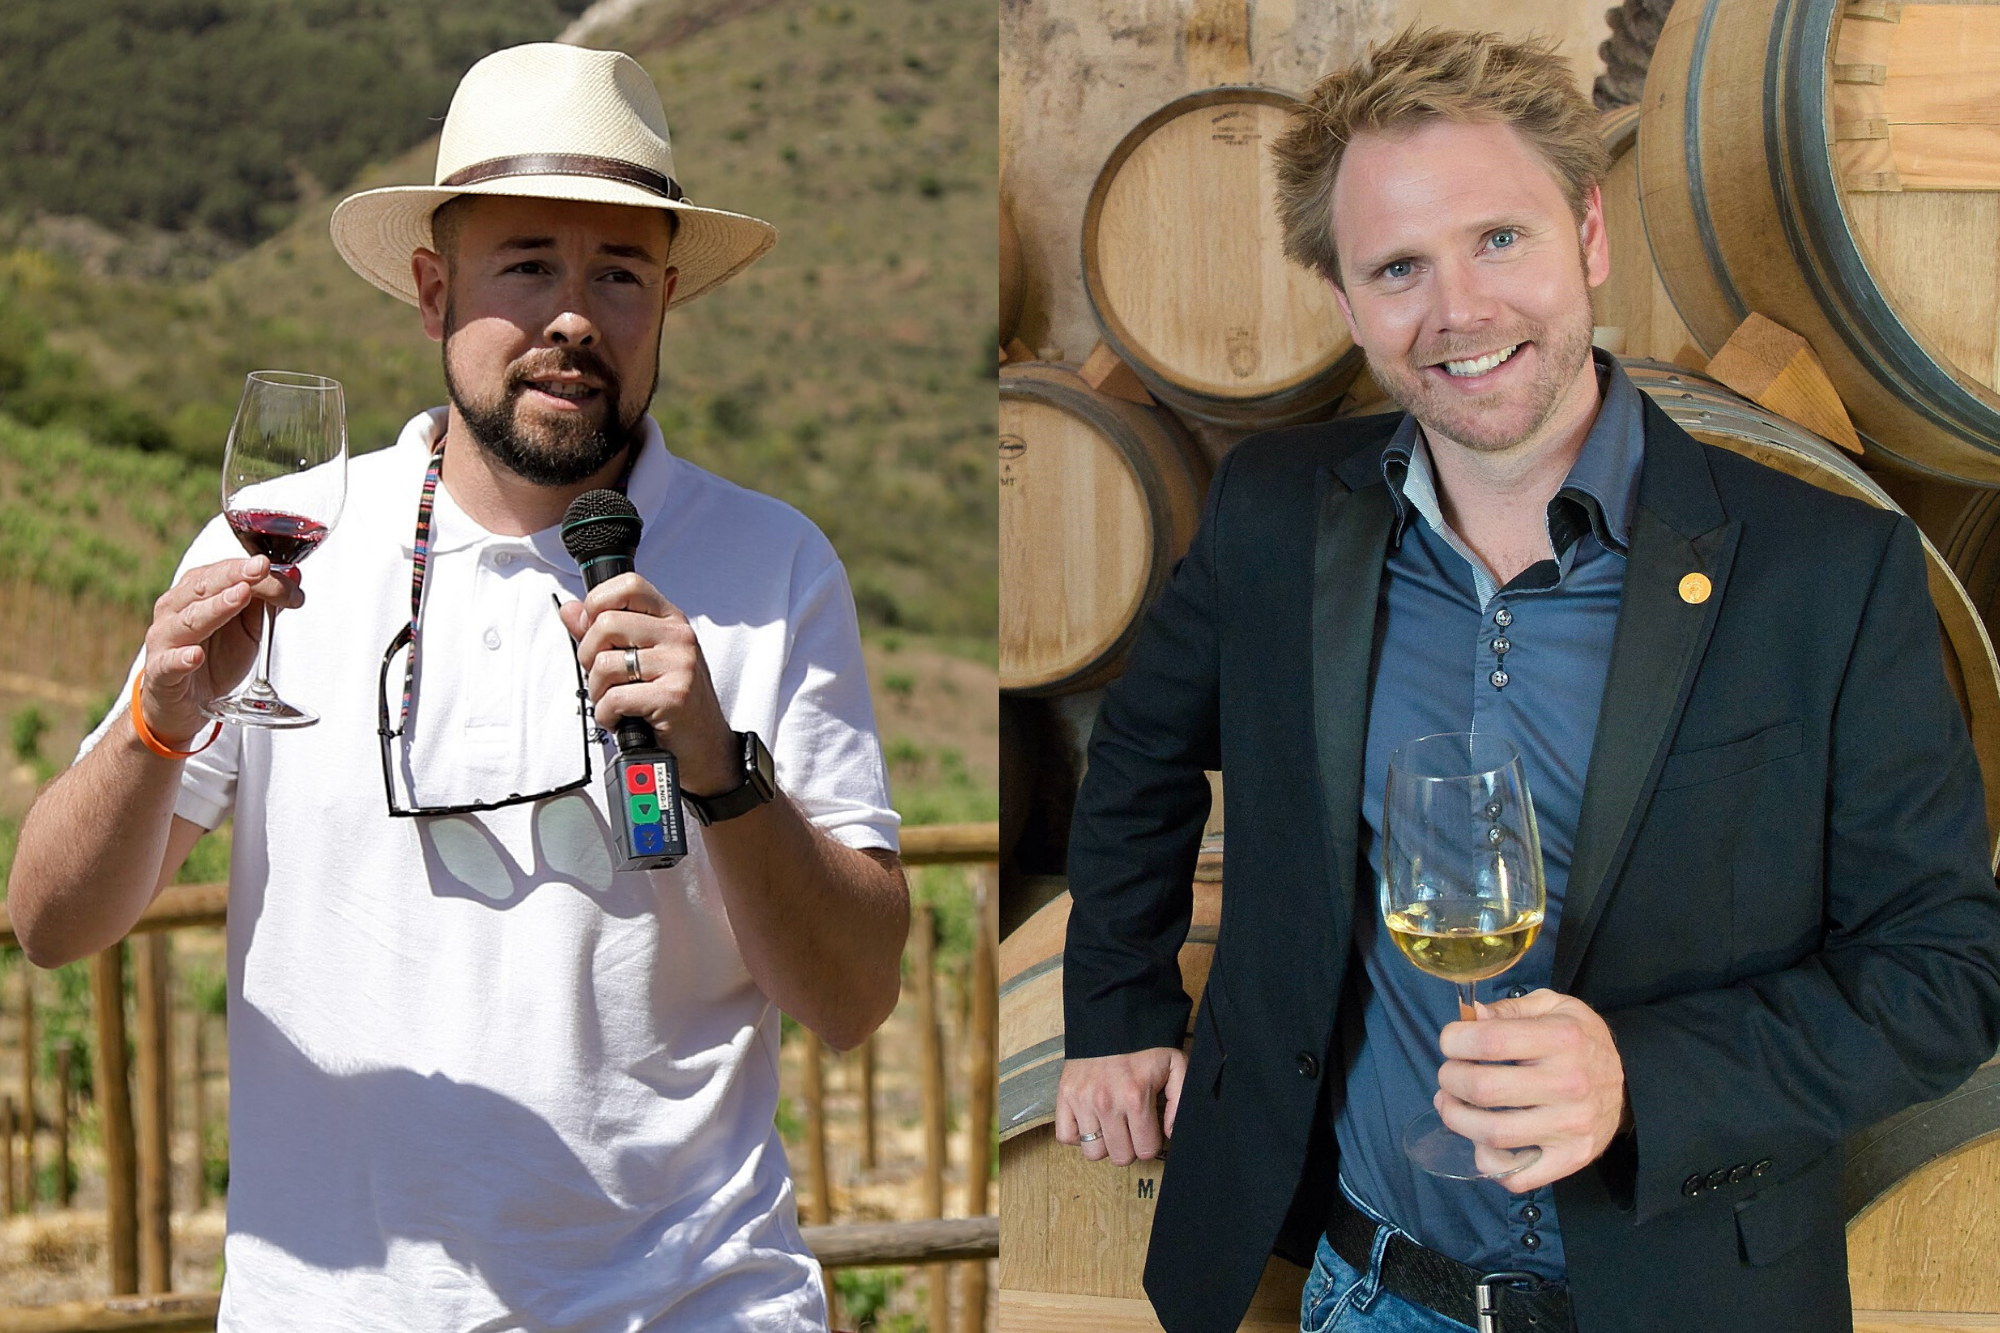 Fernando Mora MW and Jonas Tofterup MW to host online blind tasting competition